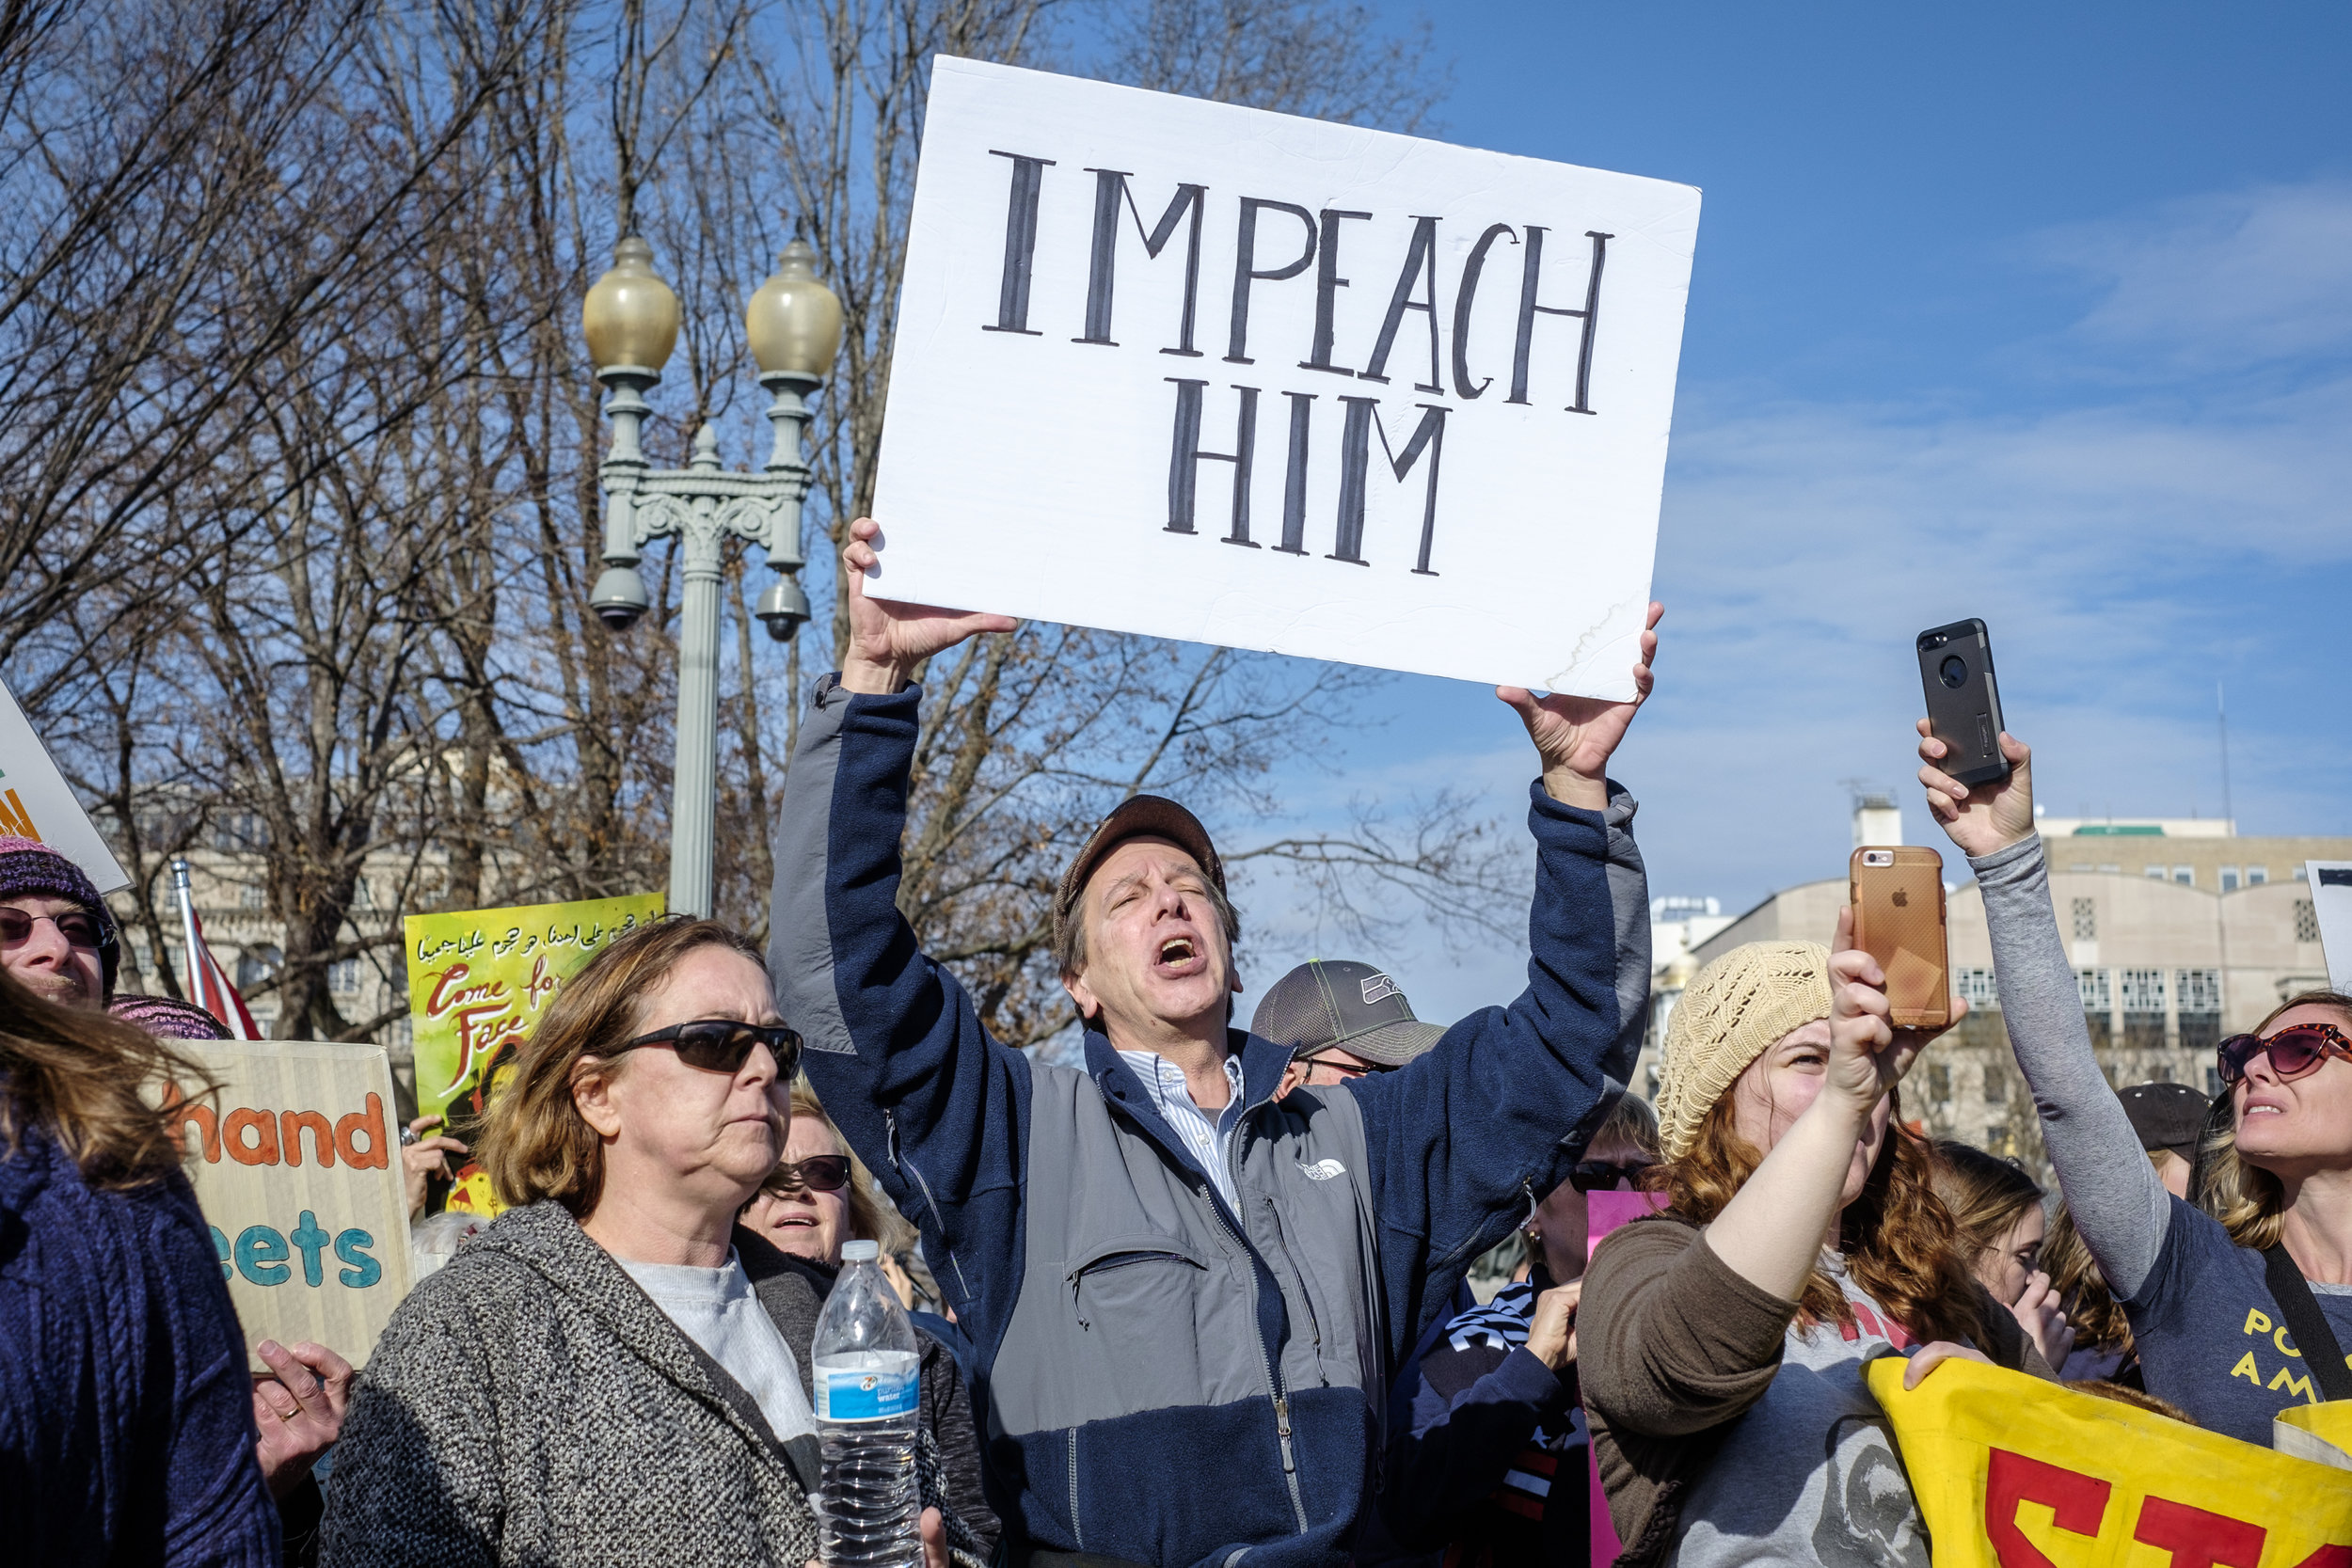 """Mark Vosburgh from North Potomac, MD is seen at the Muslim/Refugee Ban: A Year of Resistance rally on Saturday, January 27, 2018 in Washington, DC. He joined others at the rally and said, """"I'm here because I'm protesting the President of the United States. His mysoginistic, impulsive, spiteful, zenophobic, racist, scheming presidency. And I'm urging for an impeachment.""""Hundreds gathered at the White House to stand in solidarity and protest the one-year anniversary of the first Muslim and Refugee Ban by the Trump administration."""